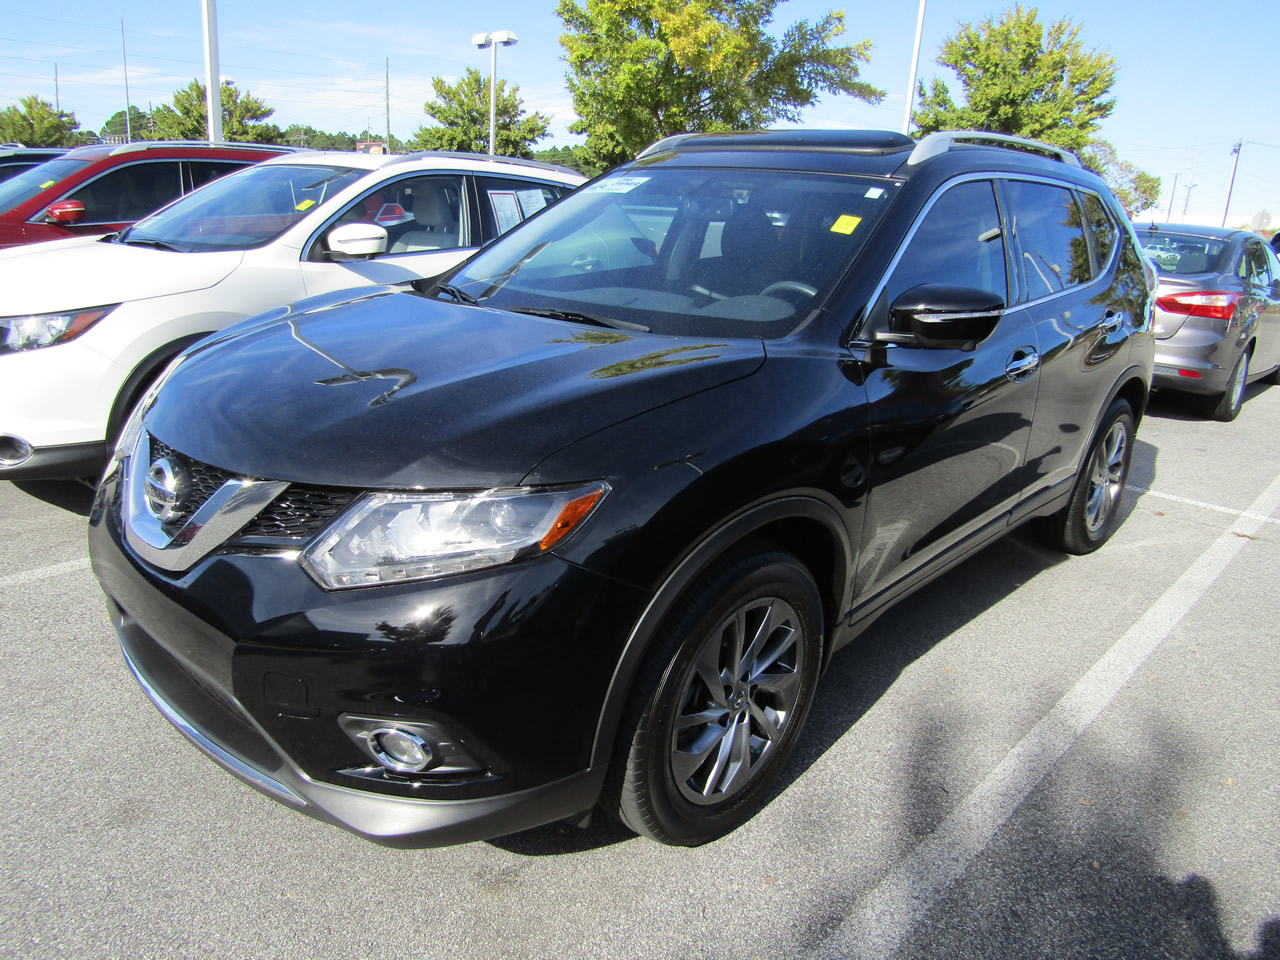 used 2015 nissan rogue sl vin 5n1at2mt4fc913892 columbia sc 29223 dick smith nissan of columbia. Black Bedroom Furniture Sets. Home Design Ideas